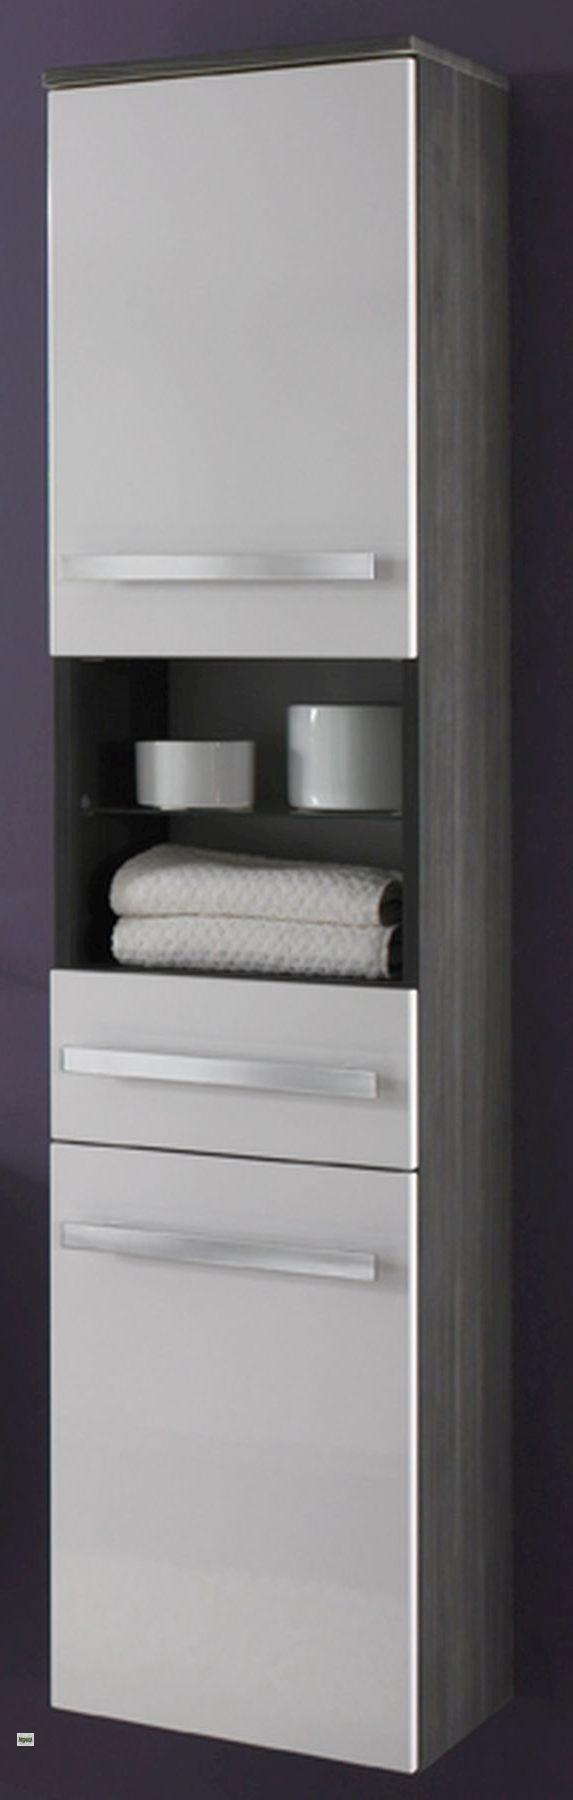 badm bel set 5 teile spiegel 2x14w waschbecken hochschrank unterschrank h ngend. Black Bedroom Furniture Sets. Home Design Ideas